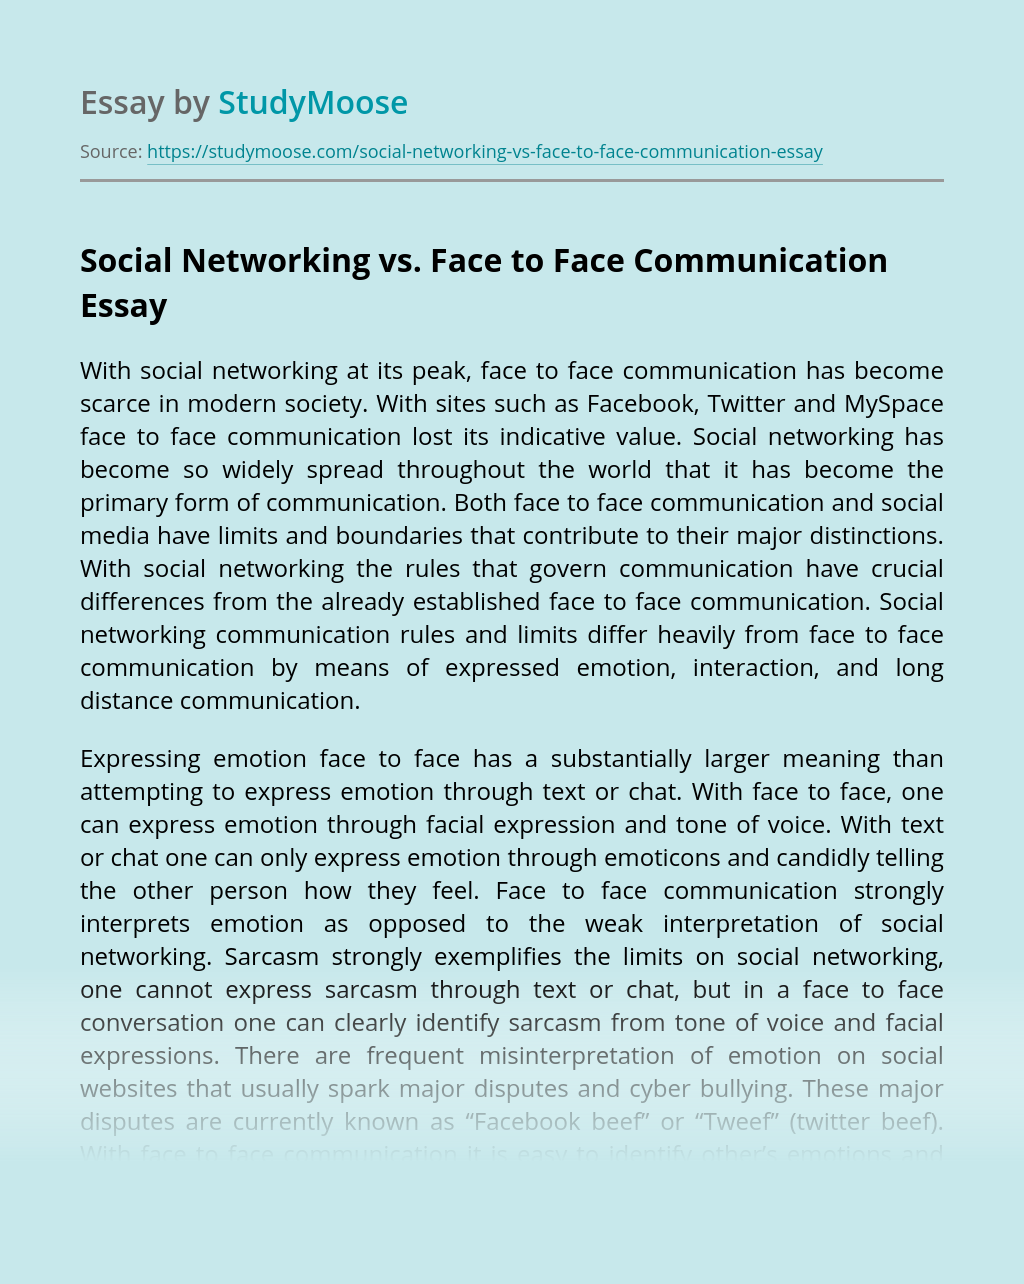 Social Networking vs. Face to Face Communication